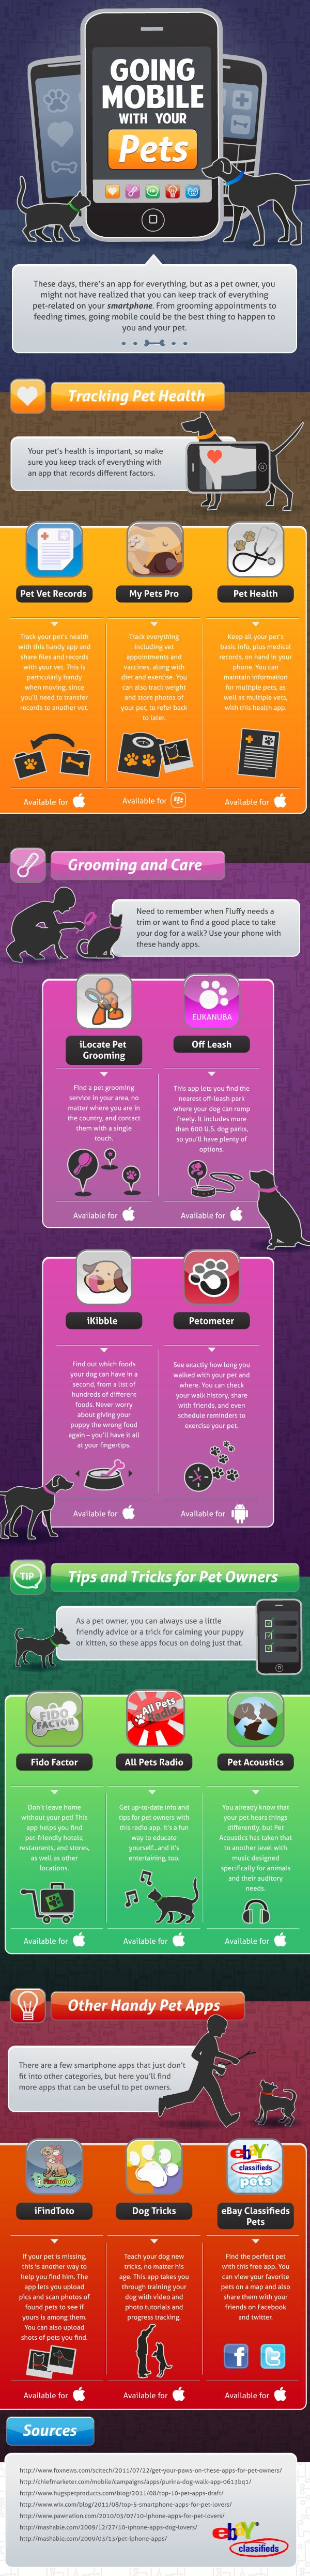 Going Mobile With Your Pets [INFOGRAPHIC]